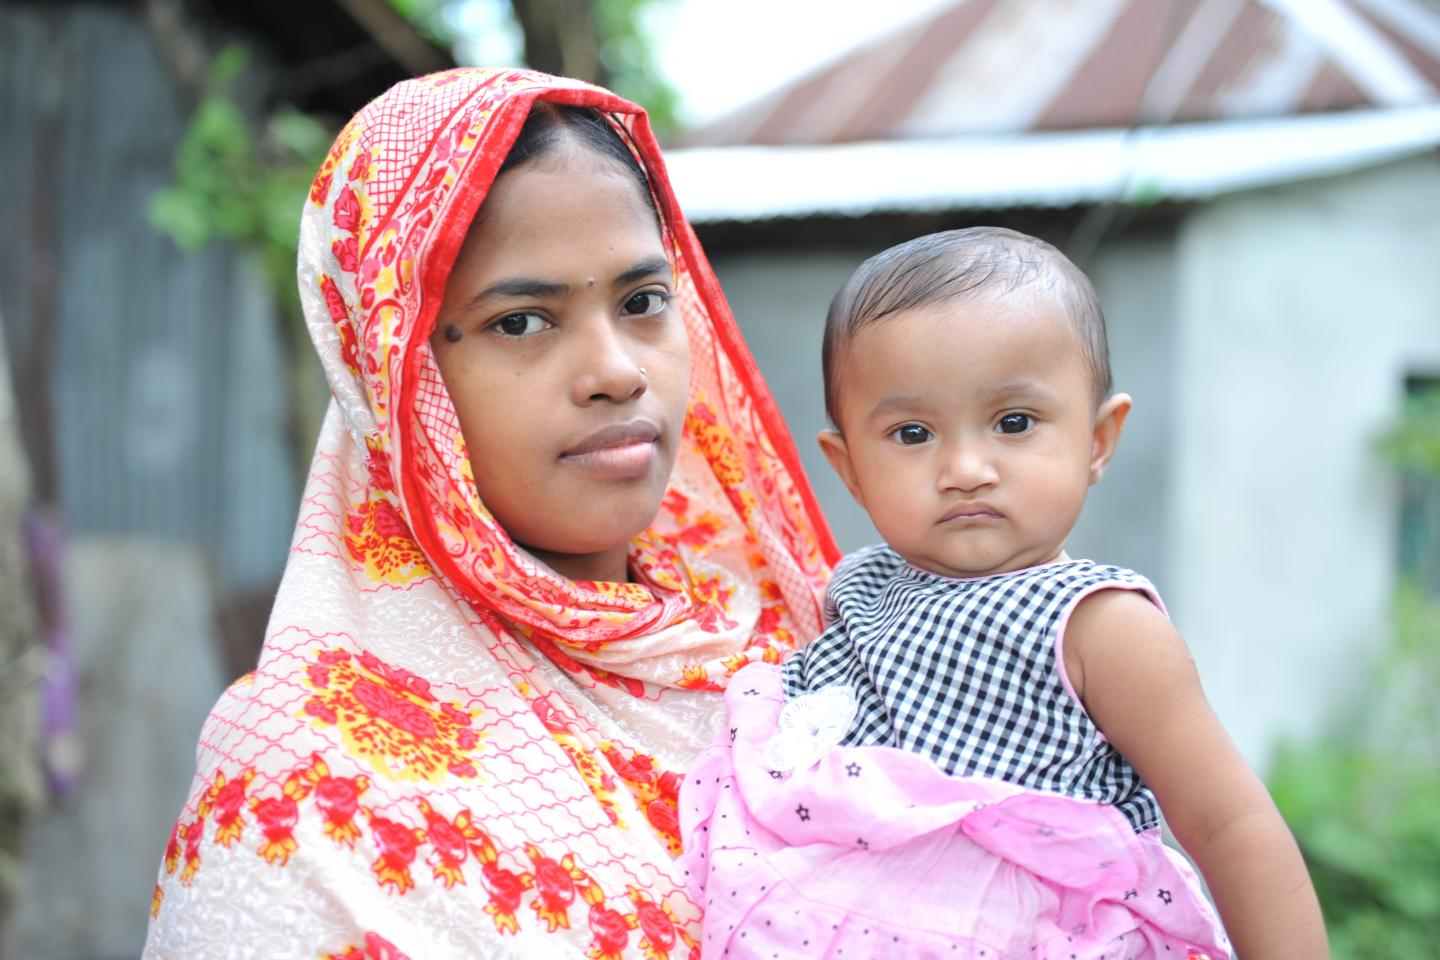 Rokeya Khatun was left with little hope when her newborn did not breathe normally for what seemed like two hours.